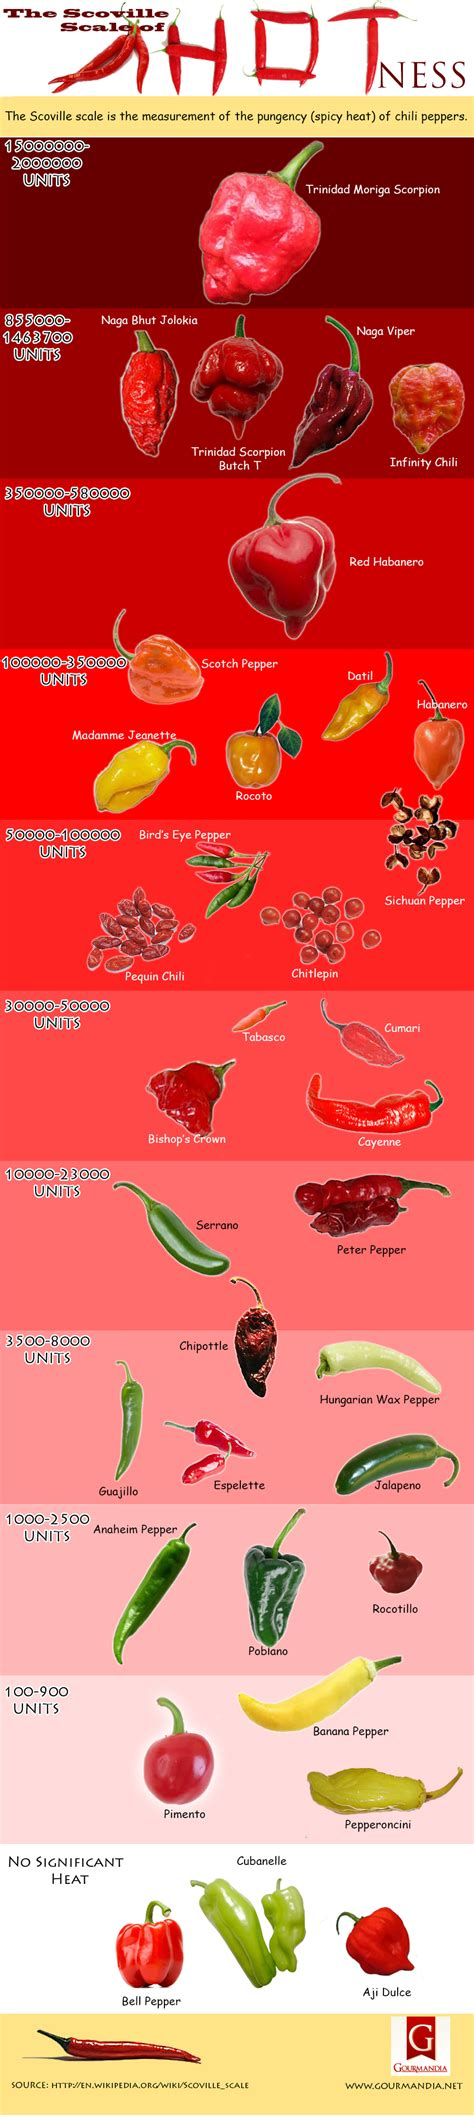 The Scoville Scale of Hotness | Visual